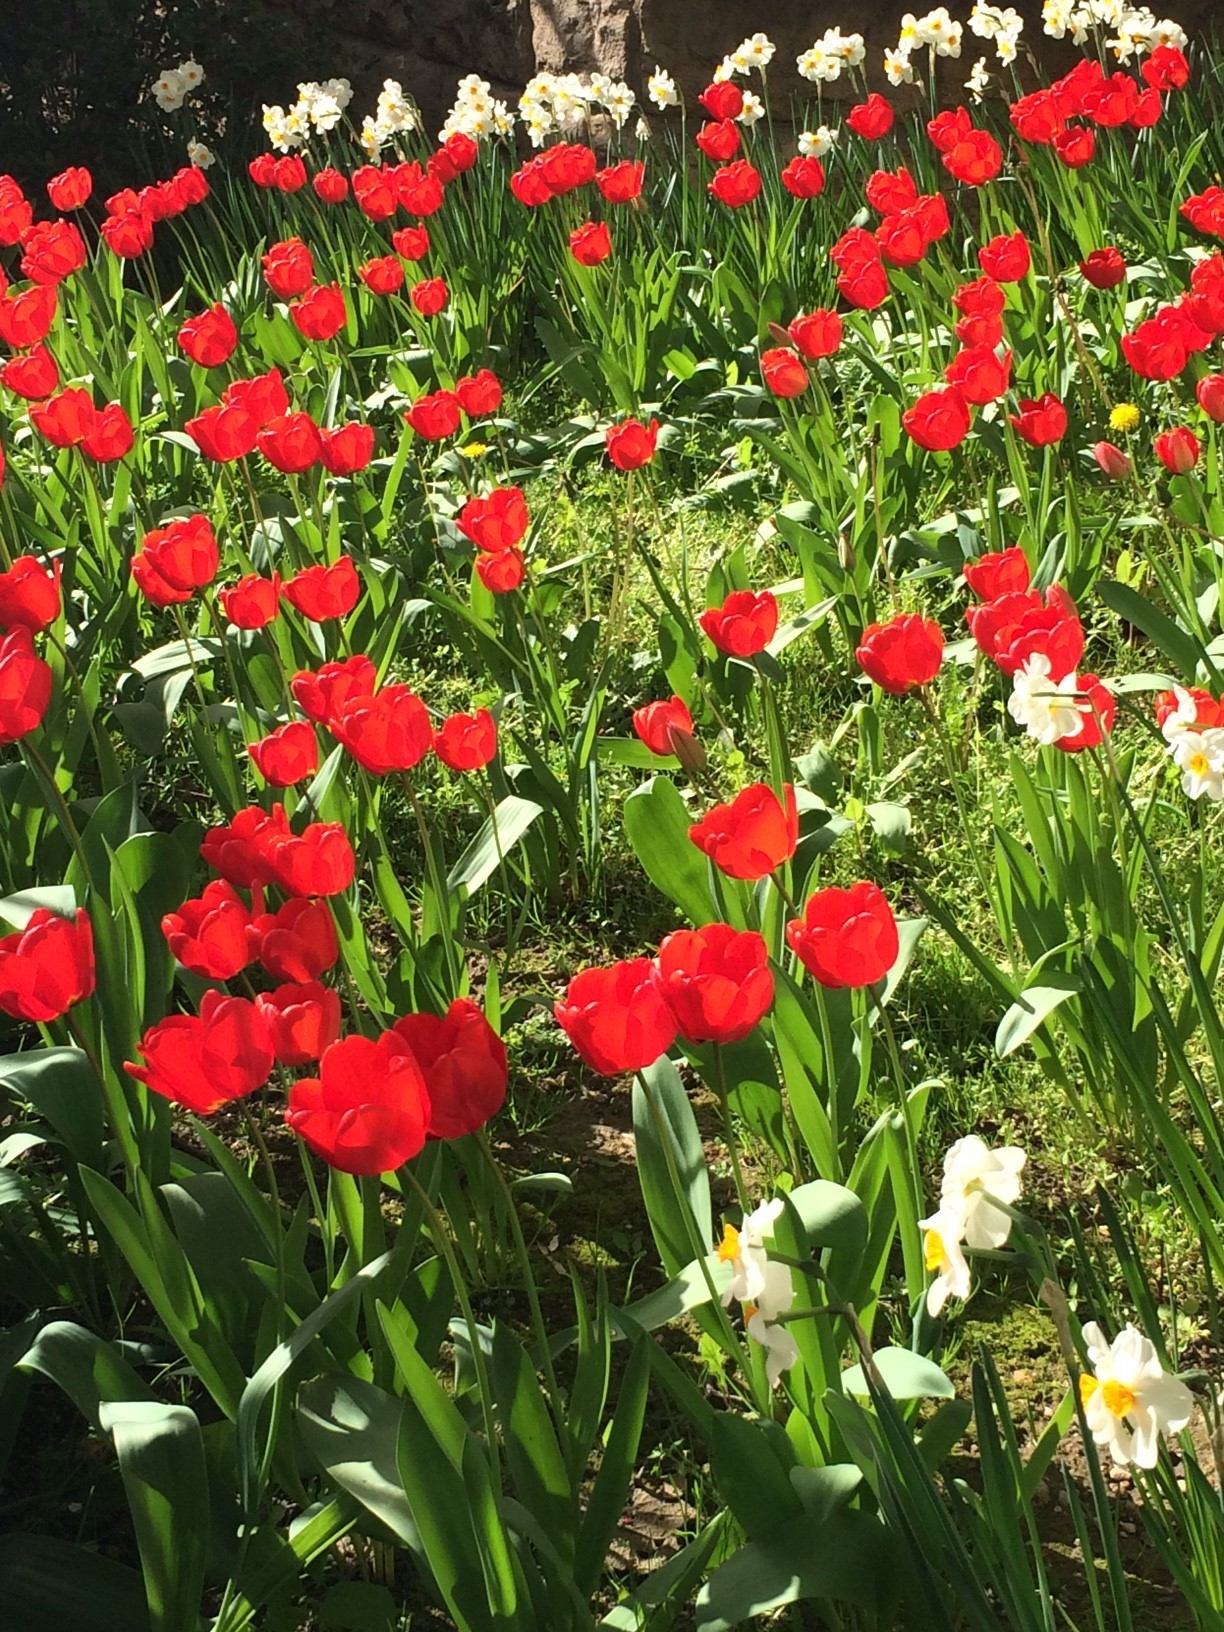 blog_sironimo_fleurs_tulipes_avril_2017 (1)